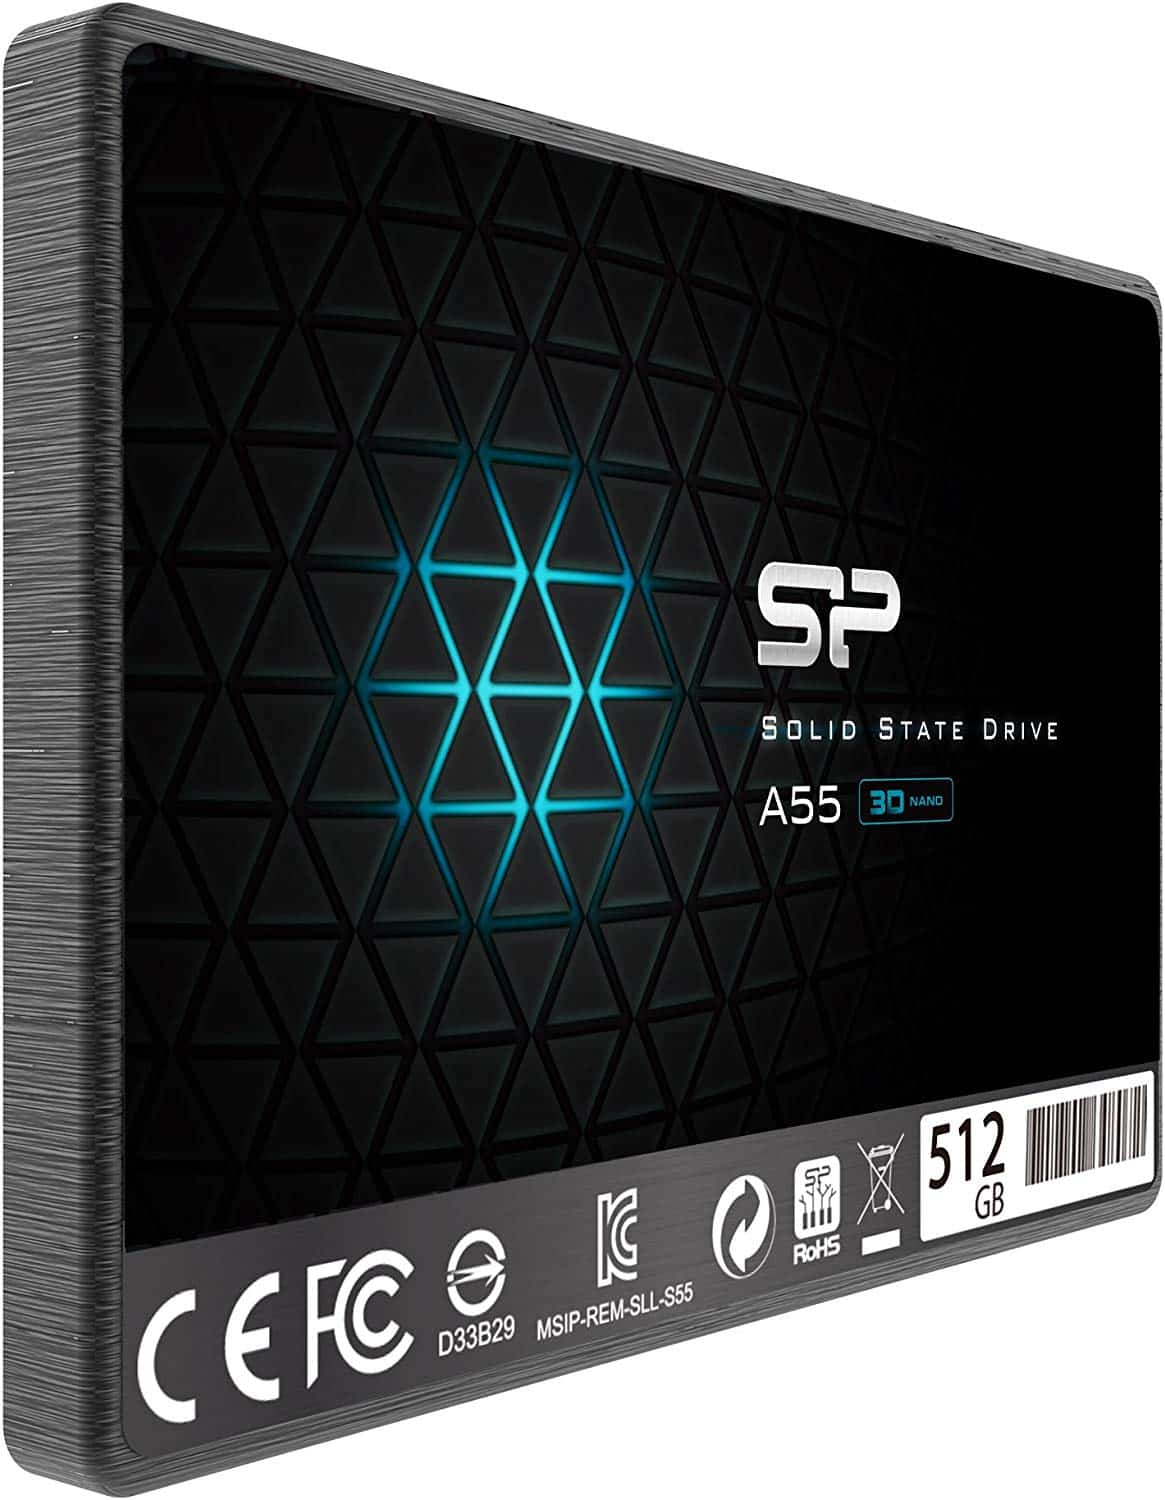 SSD 3D NAND Gaming